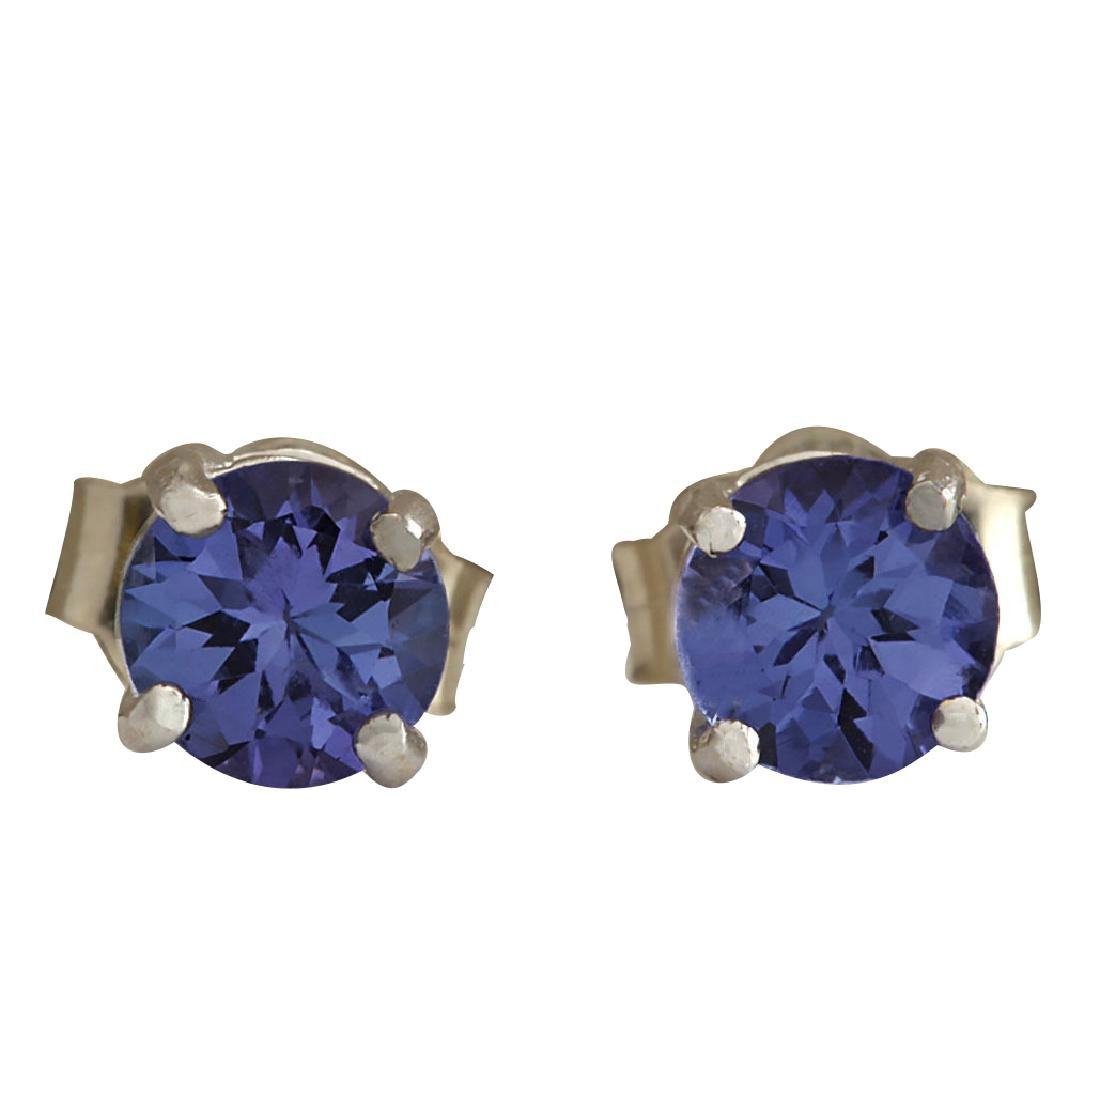 1.00CTW Natural Tanzanite Earrings In 14K Solid White